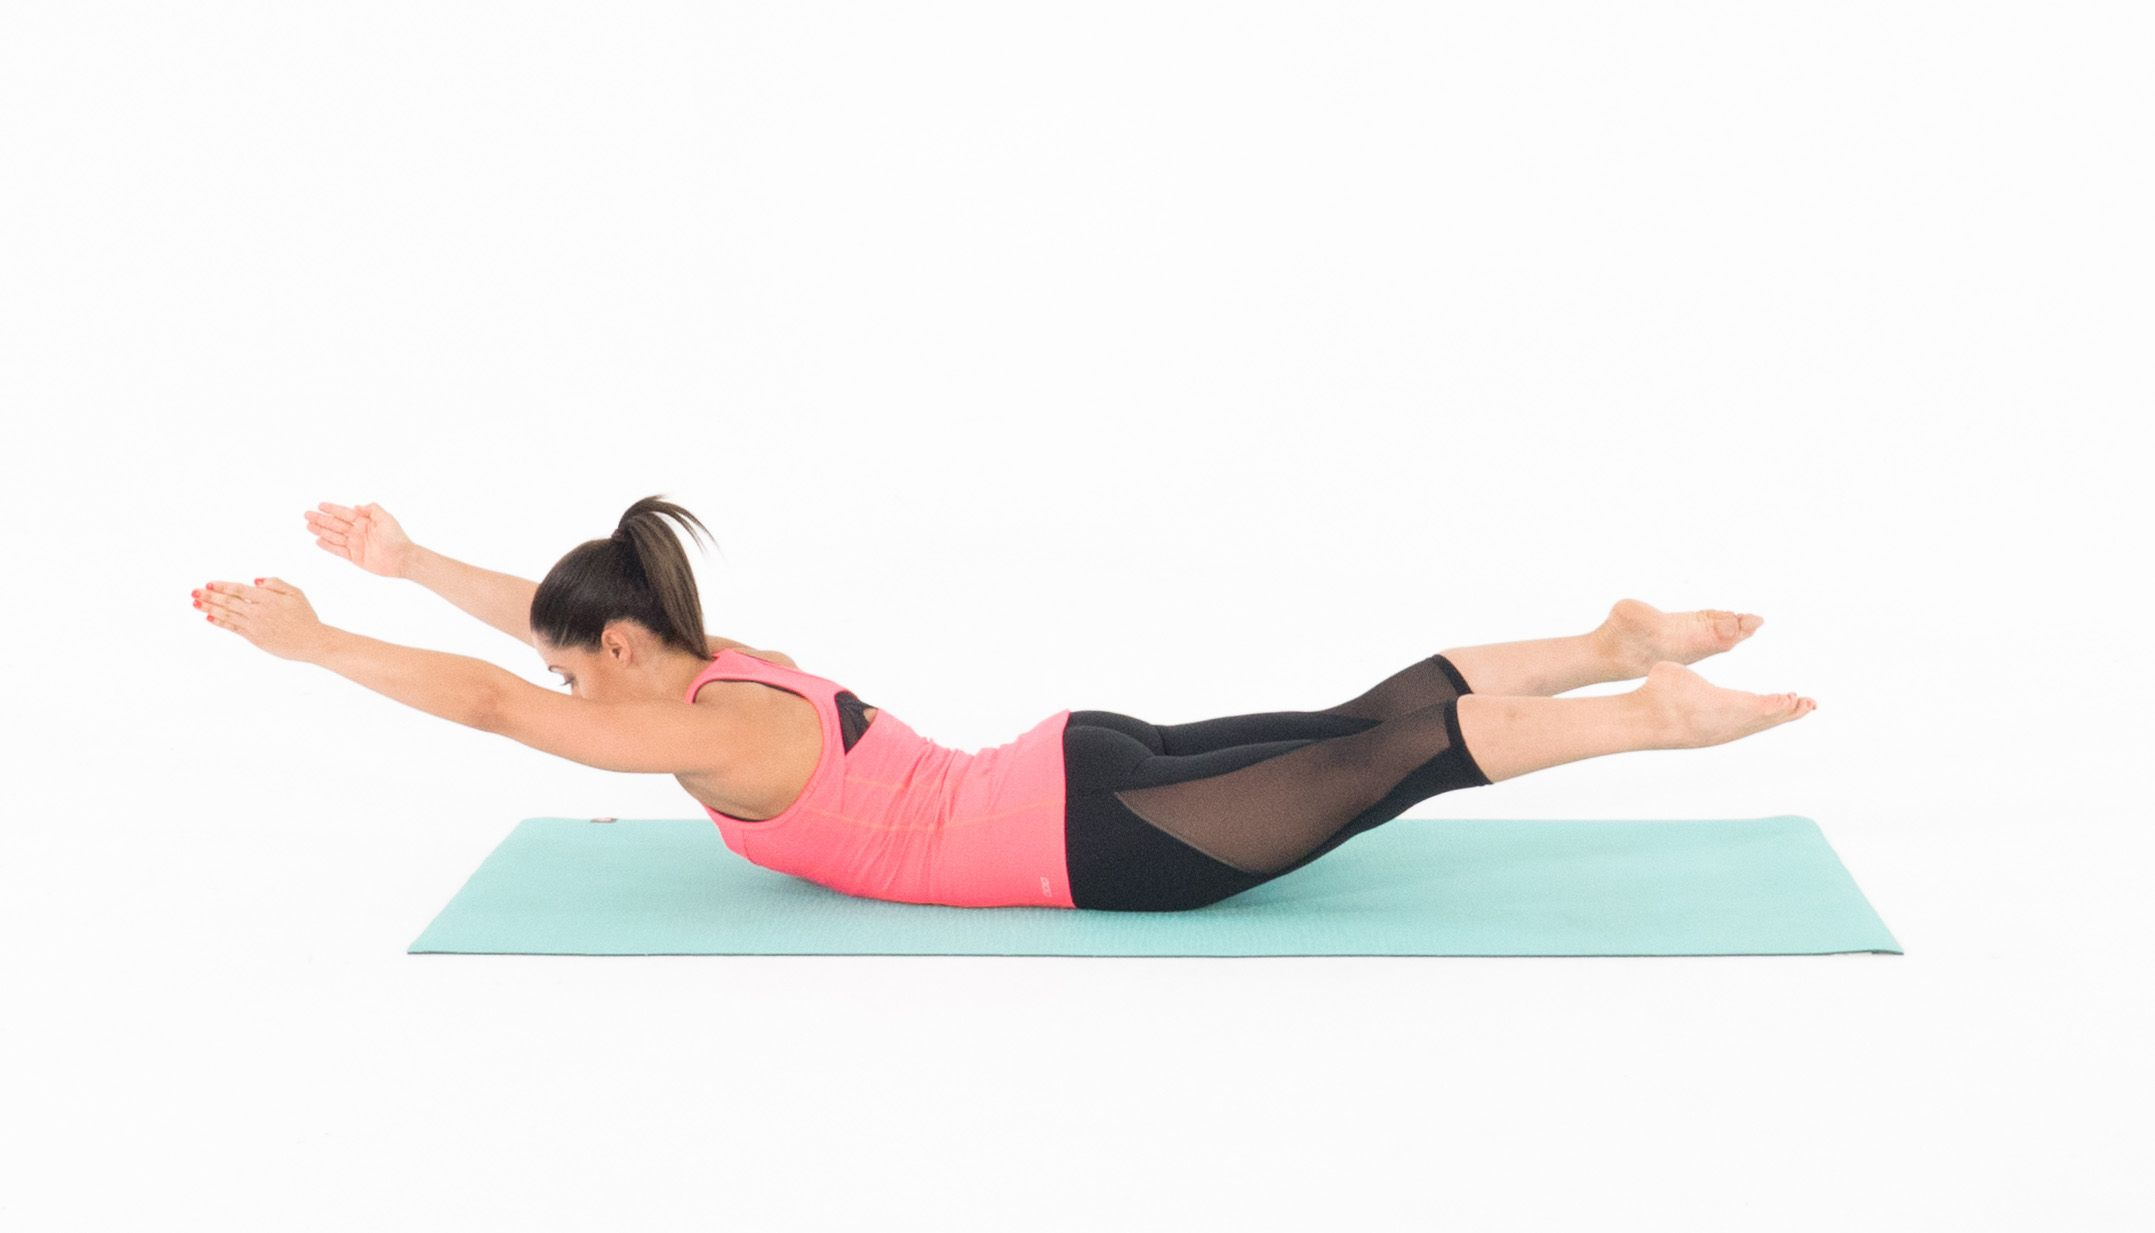 PELVIC FLOOR AND CORE EXERCISES FOR POST DELIVERY